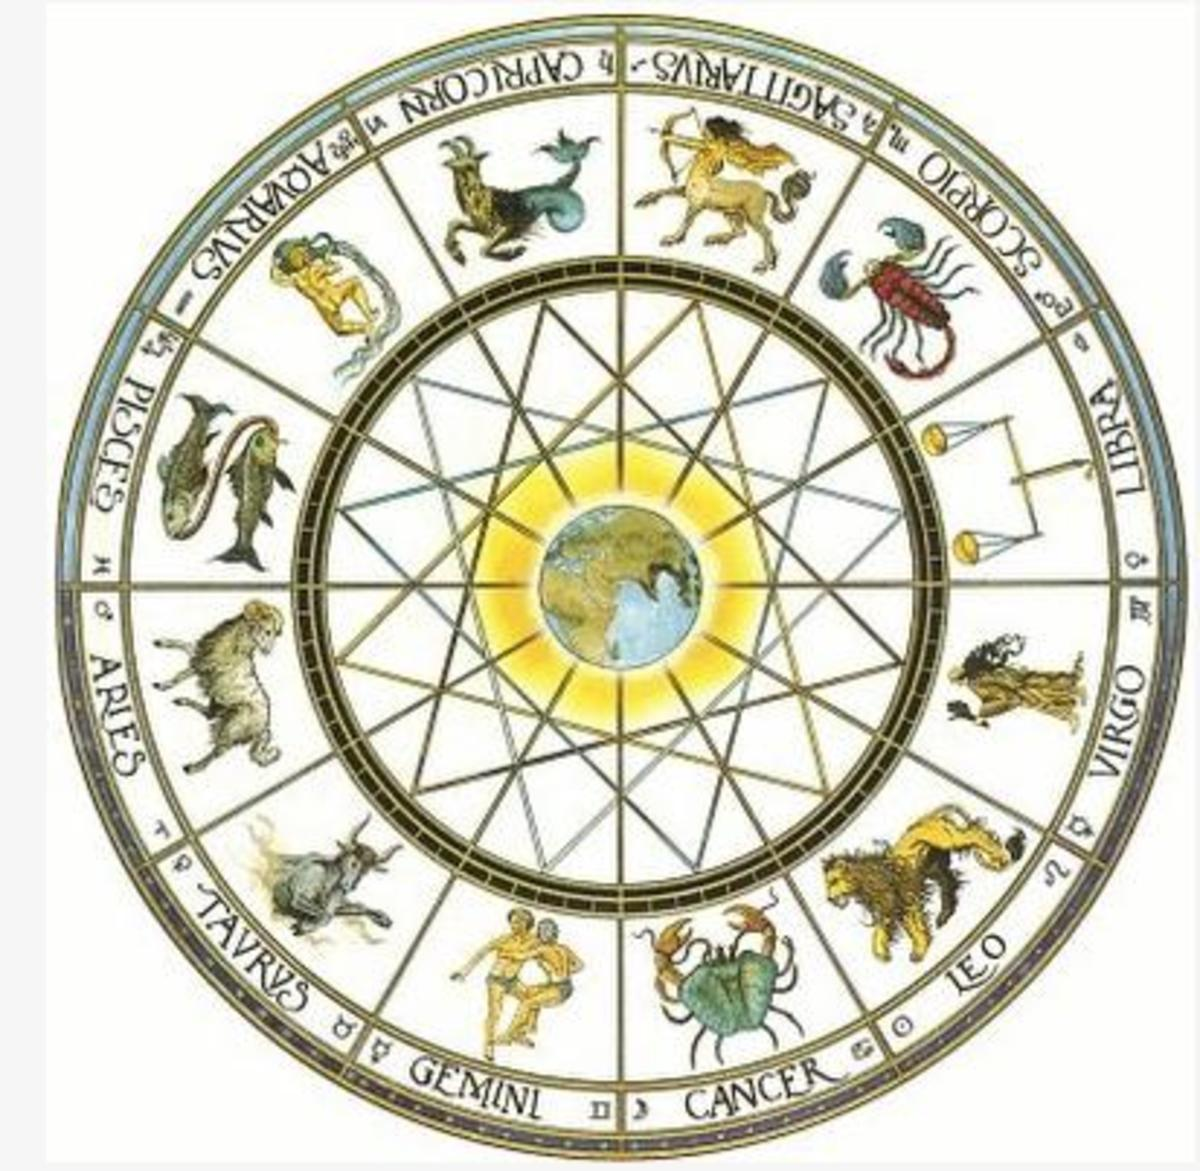 To start the Age of Pisces the fish (~02200 CE) the lamb of God was killed (i.e., the constellation Aries, the ram, no longer arose just before dawn on the first day of spring; instead, Pisces did), the followers of Jesus fishers of men.